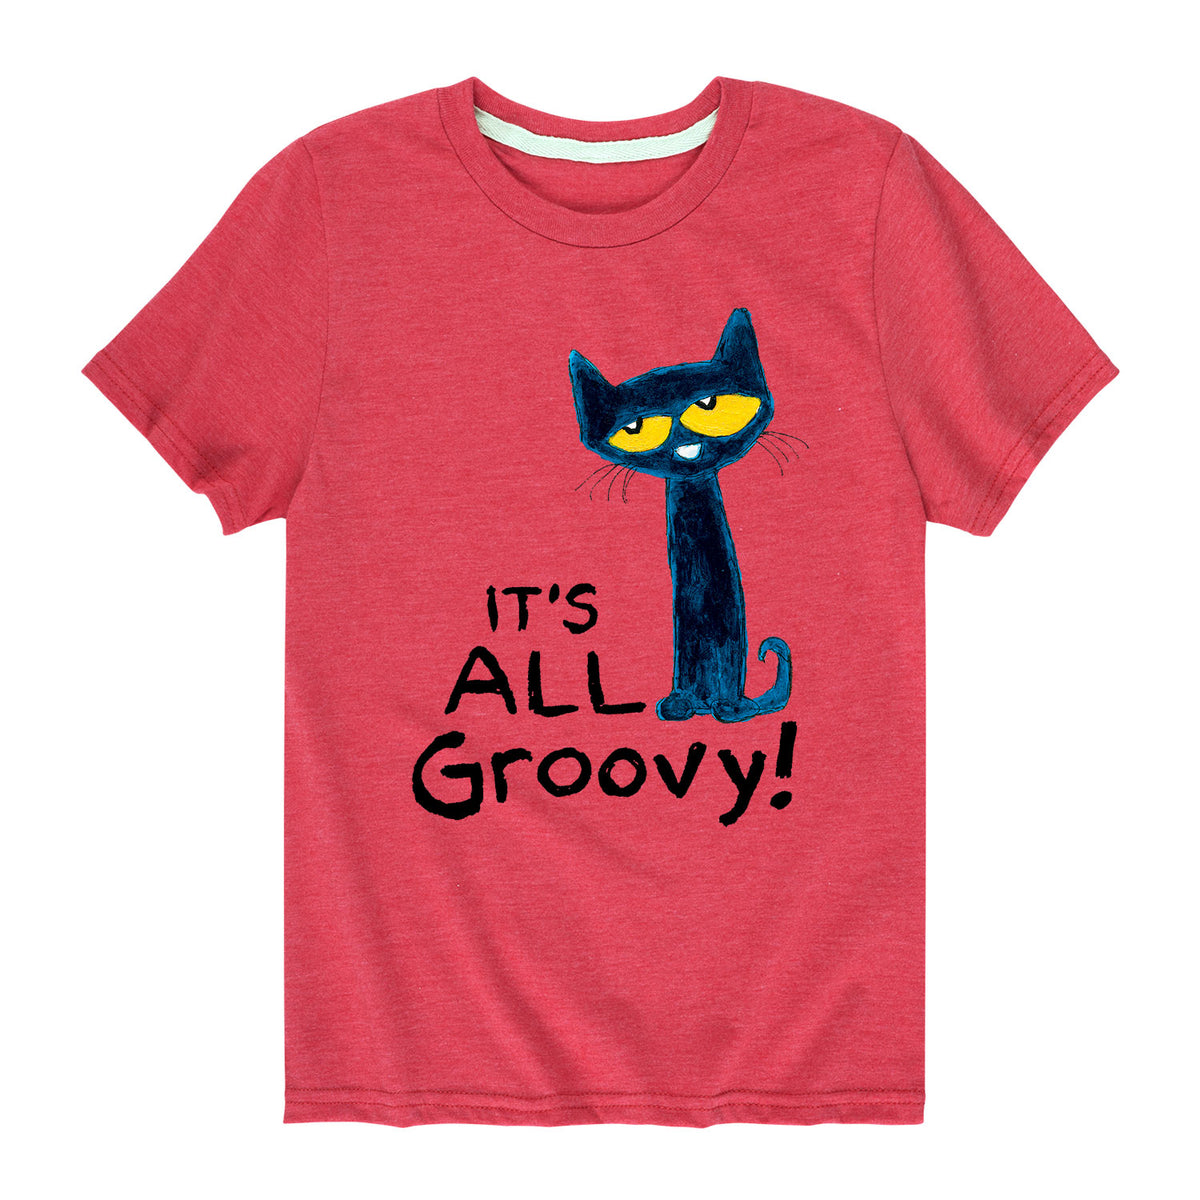 It's All Groovy - Youth & Toddler Short Sleeve T-Shirt